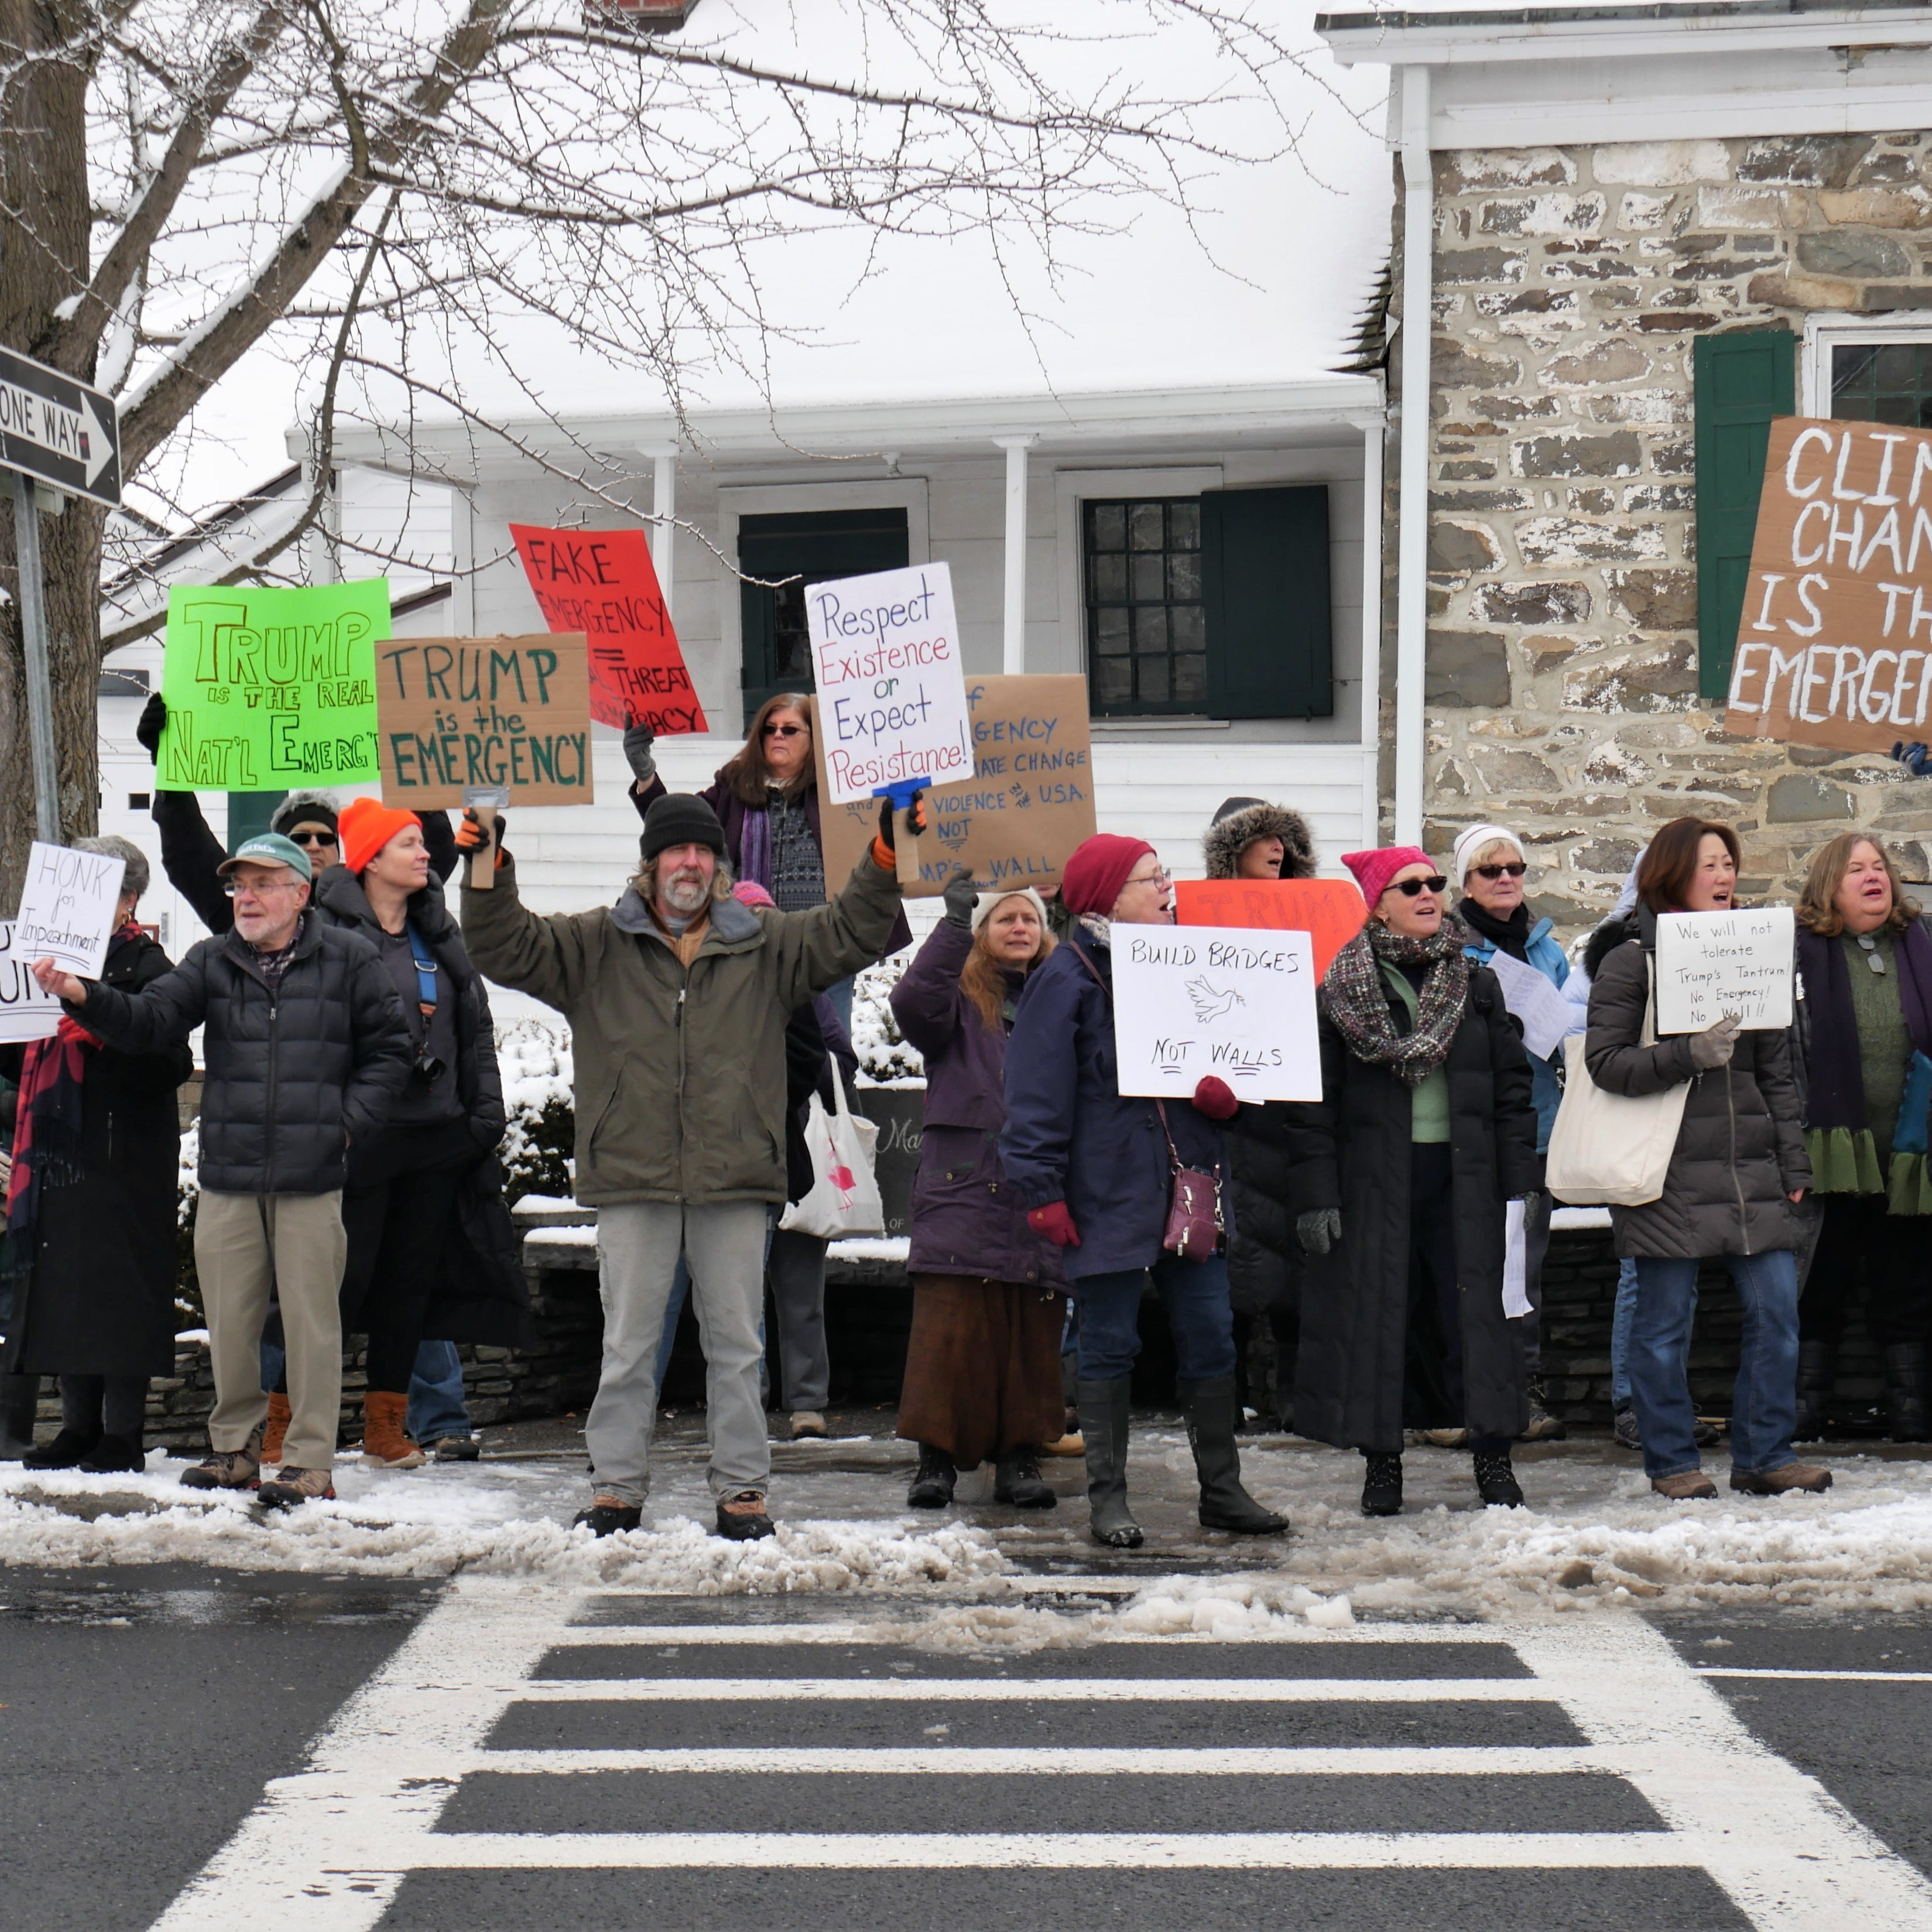 Trump's national emergency declaration protested, supported locally